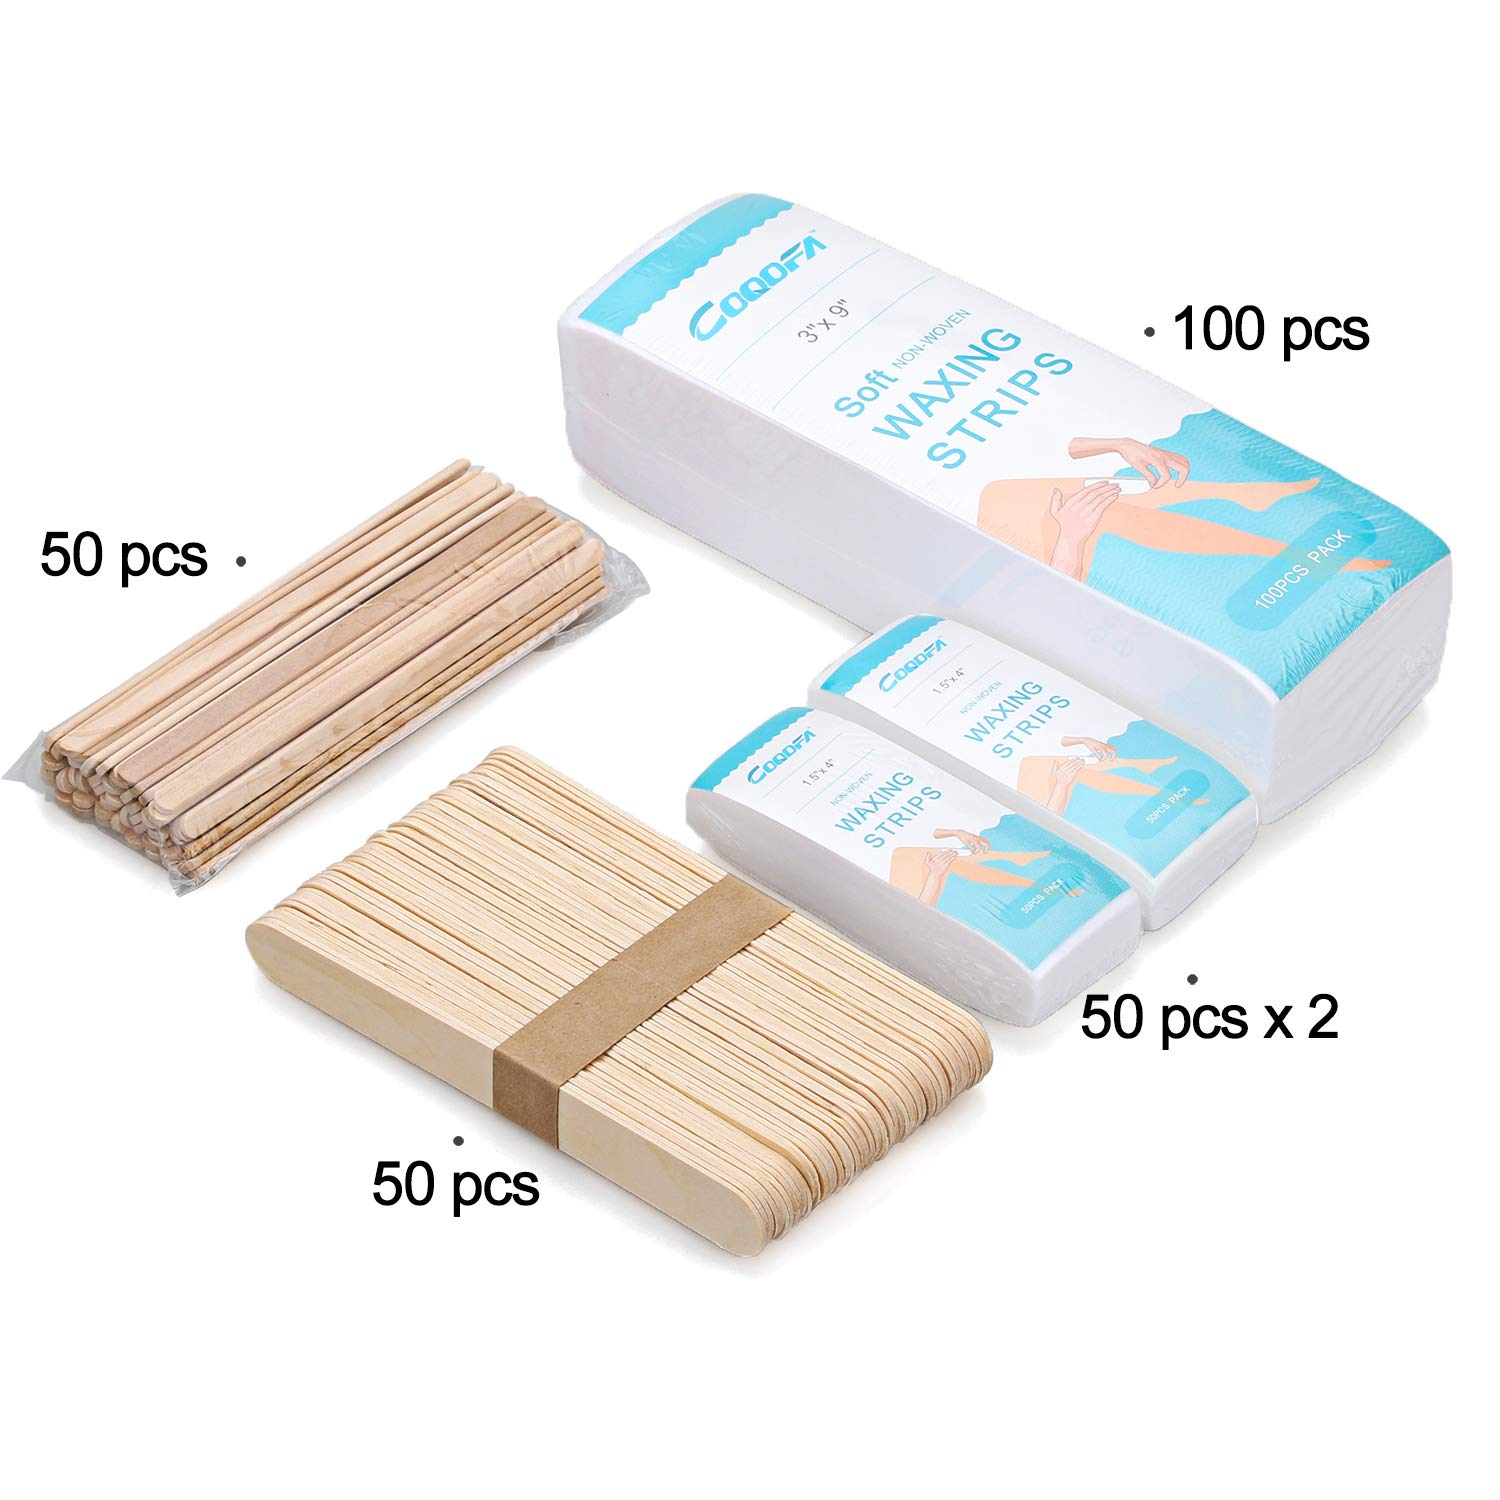 200 Pieces Non-Woven Hair Removal Wax Strips, Facial and Full Body Size (100 Large, 100 Small) & 100 Pieces Wooden Wax Applicator Sticks (50 Large, 50 Small)